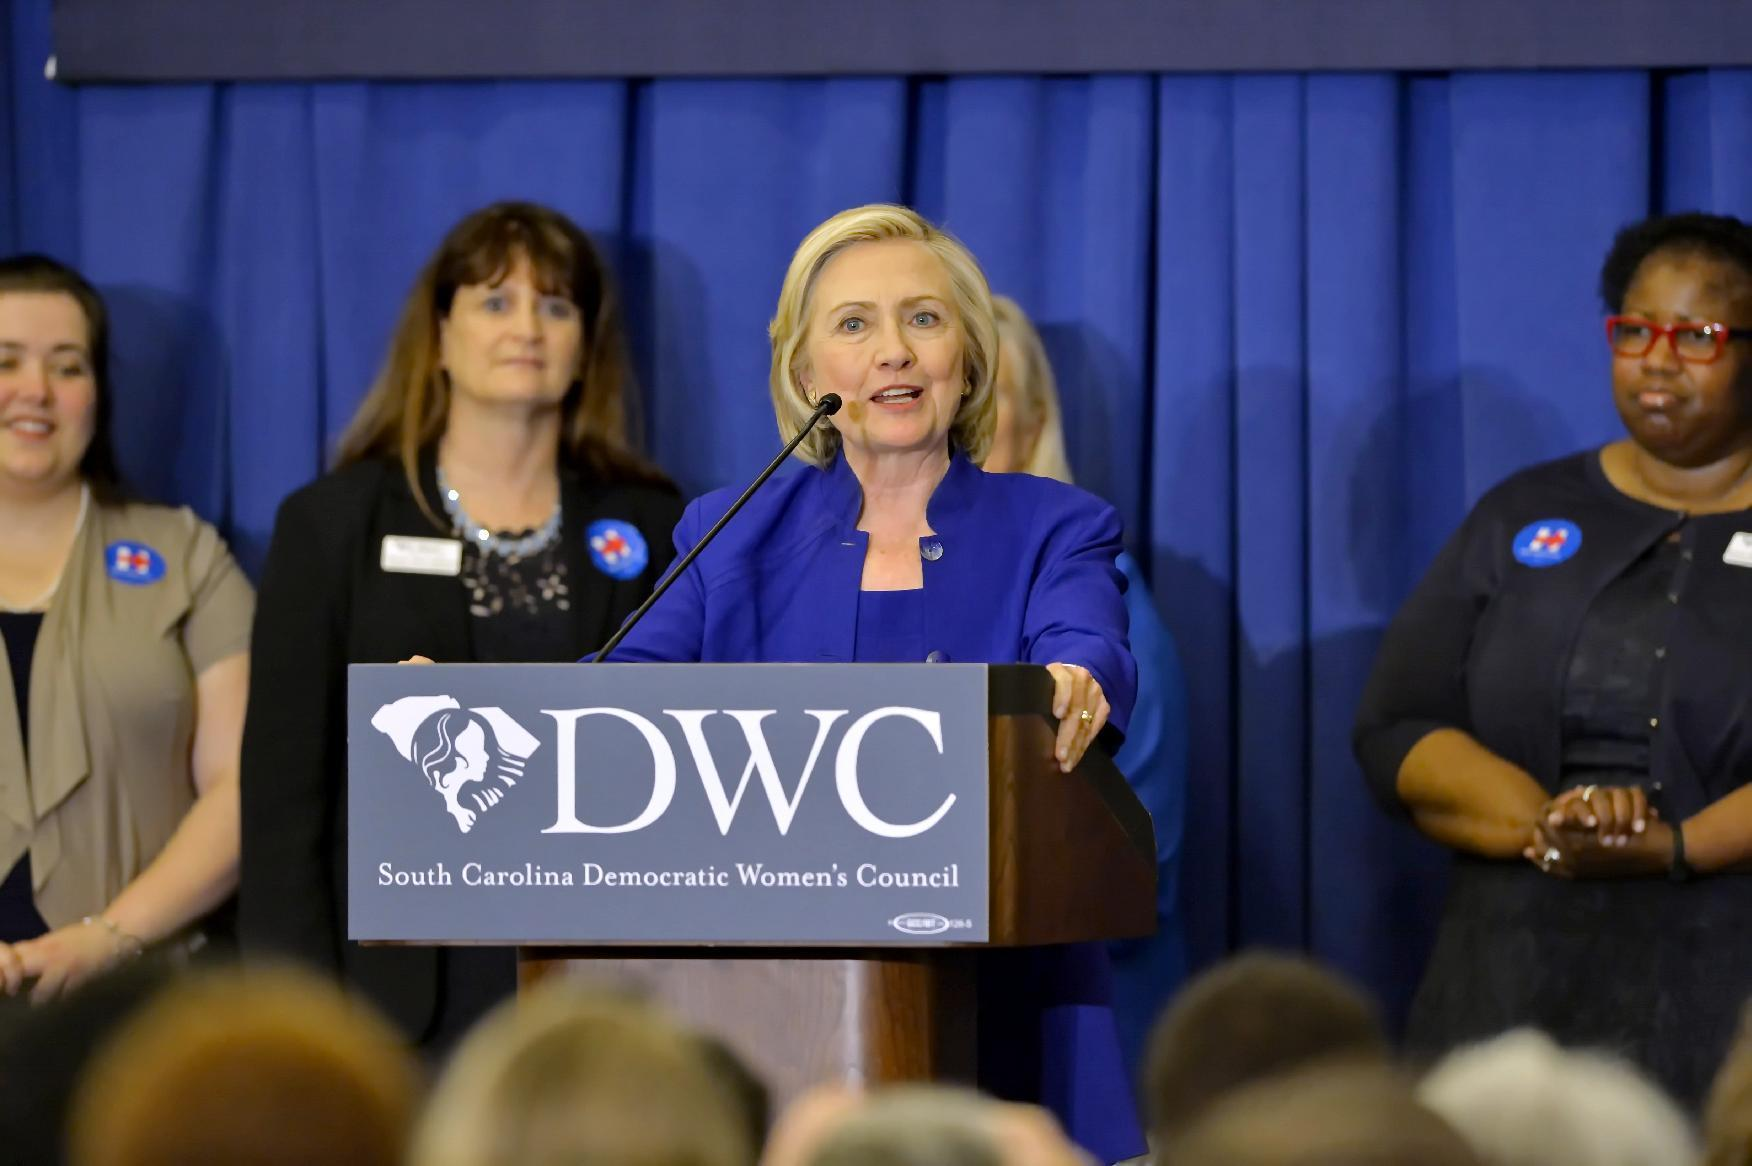 Clinton urges making middle class 'mean something again'